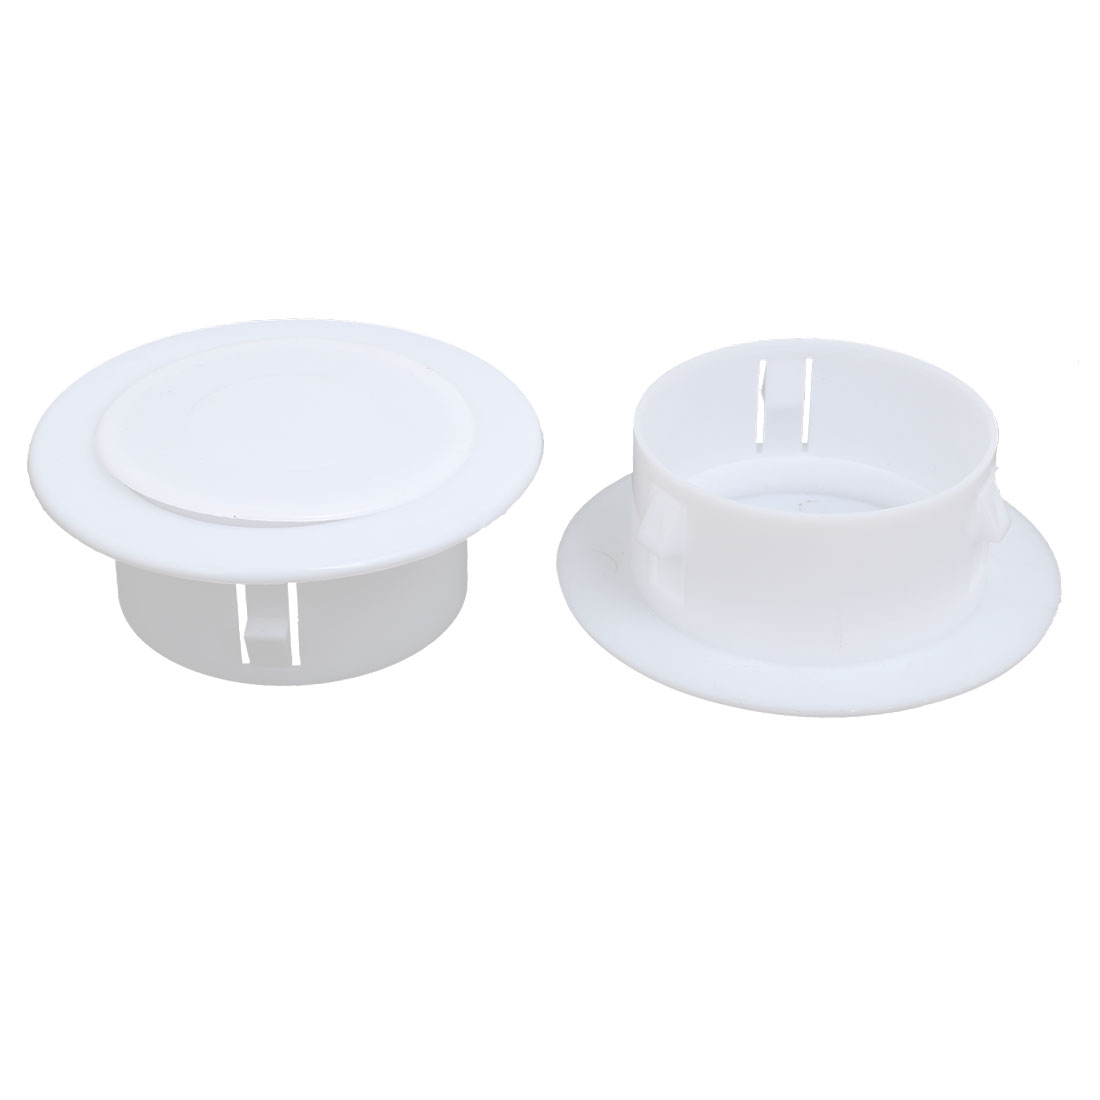 99mmx36mm Plastic Air Conditioning Wall Hole Cover White 2pcs